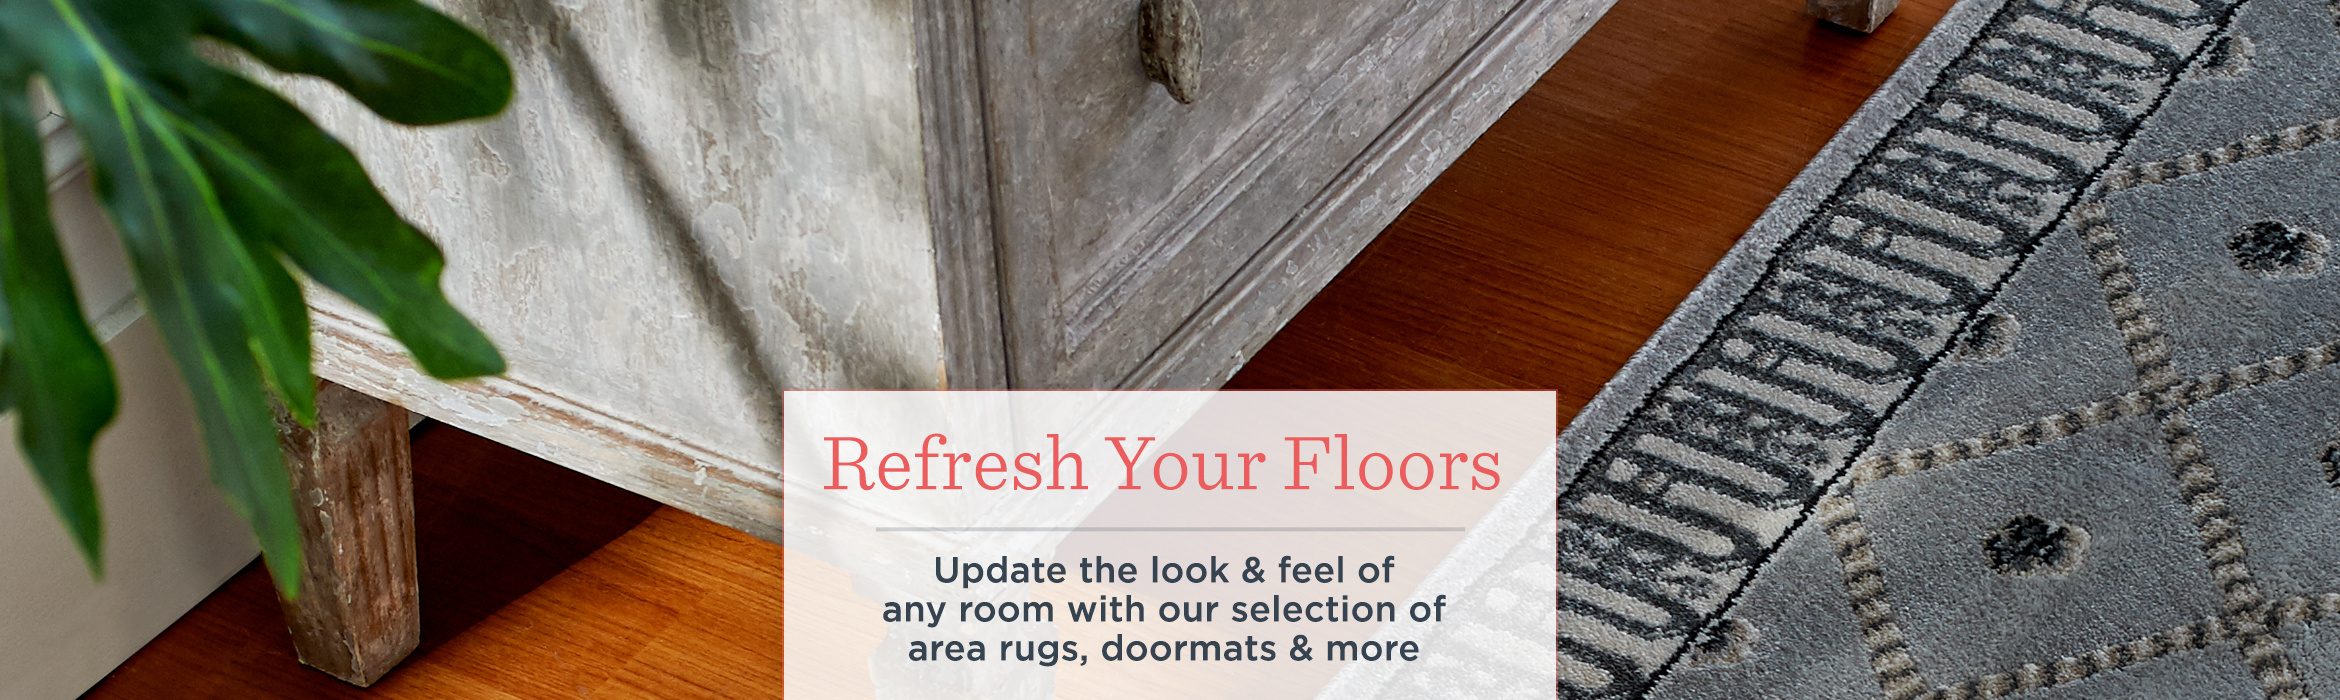 Refresh Your Floors Update The Look Feel Of Any Room With Our Selection